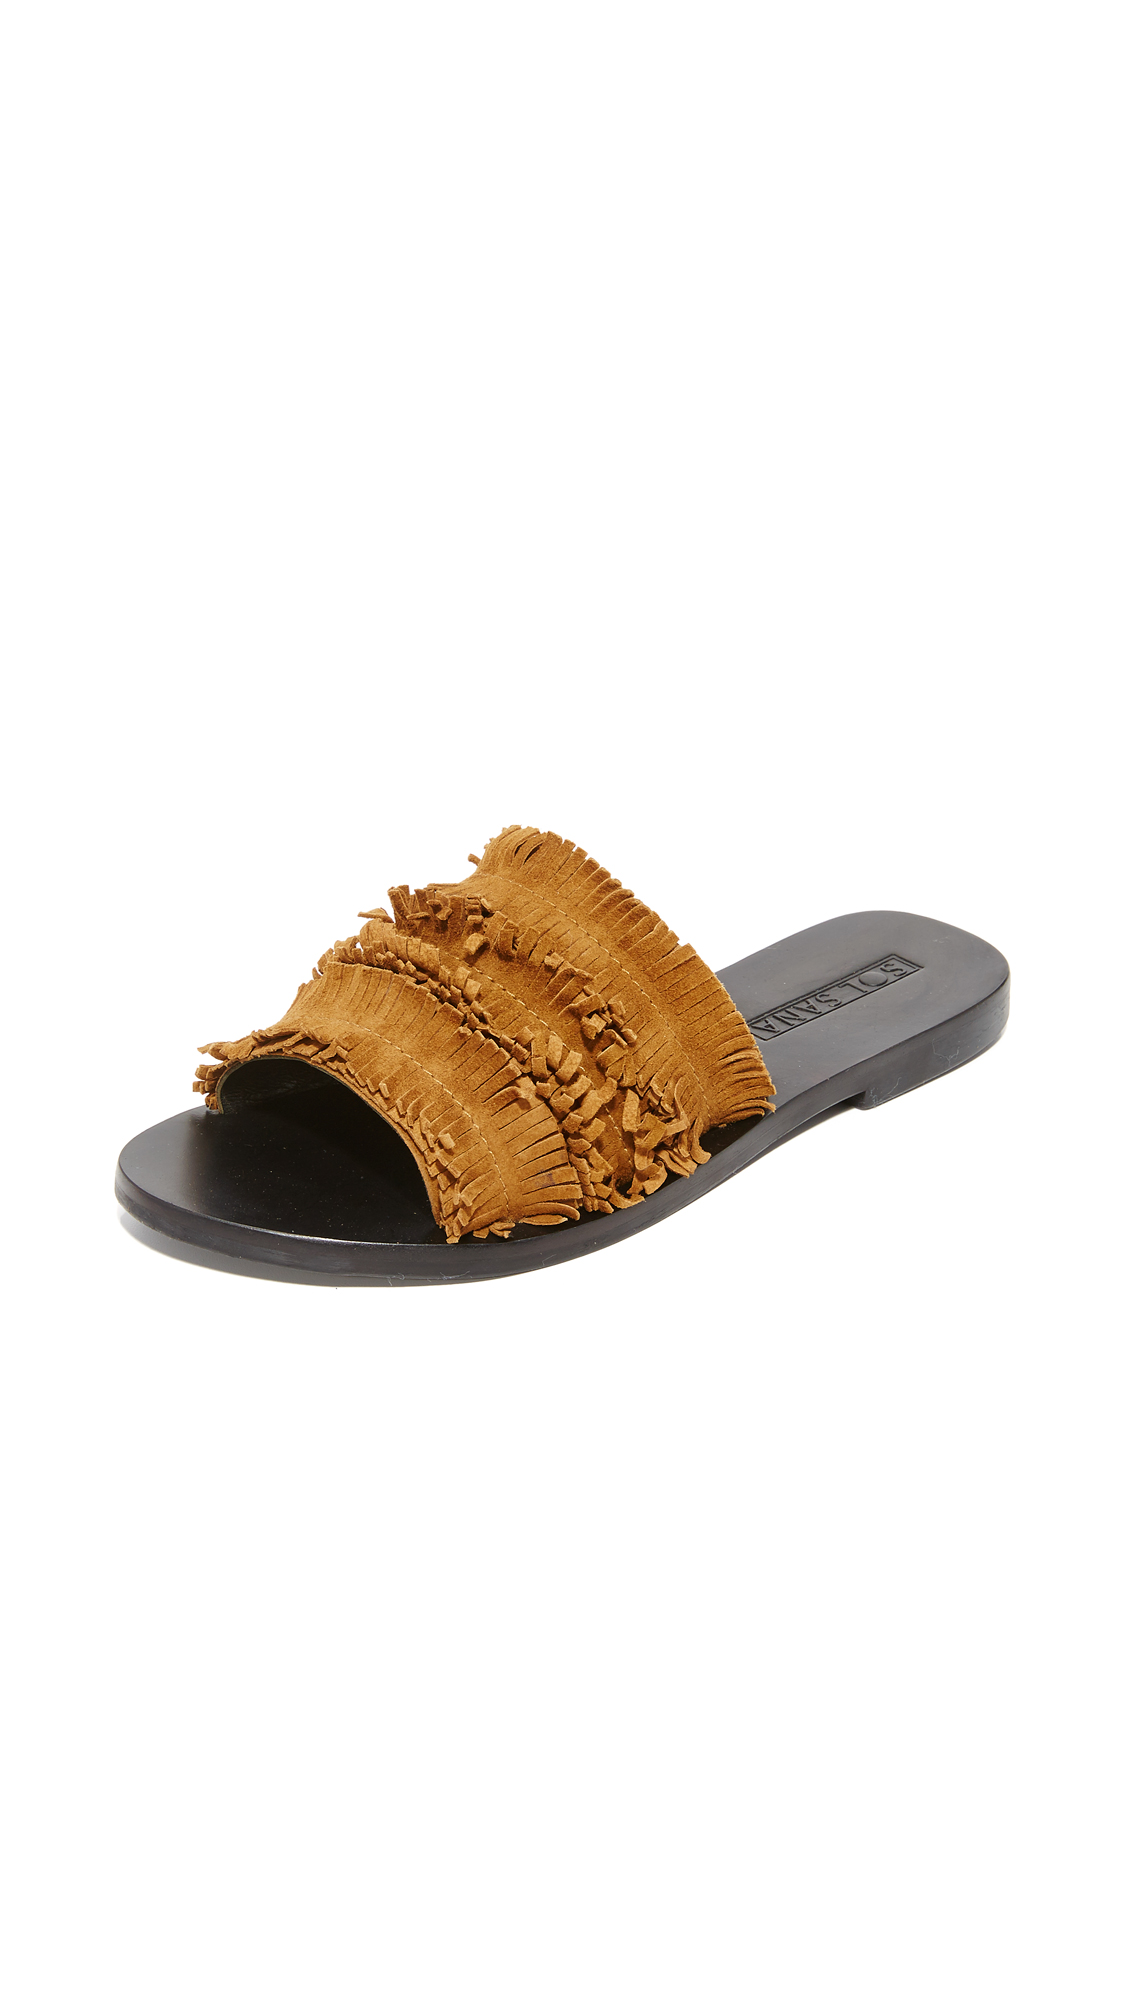 Layers of fringe cover the vamp on these suede Sol Sana sandals. Low heel and rubber sole. Leather: Goatskin. Imported, Indonesia. This item cannot be gift boxed. Available sizes: 35,36,37,38,39,40,41